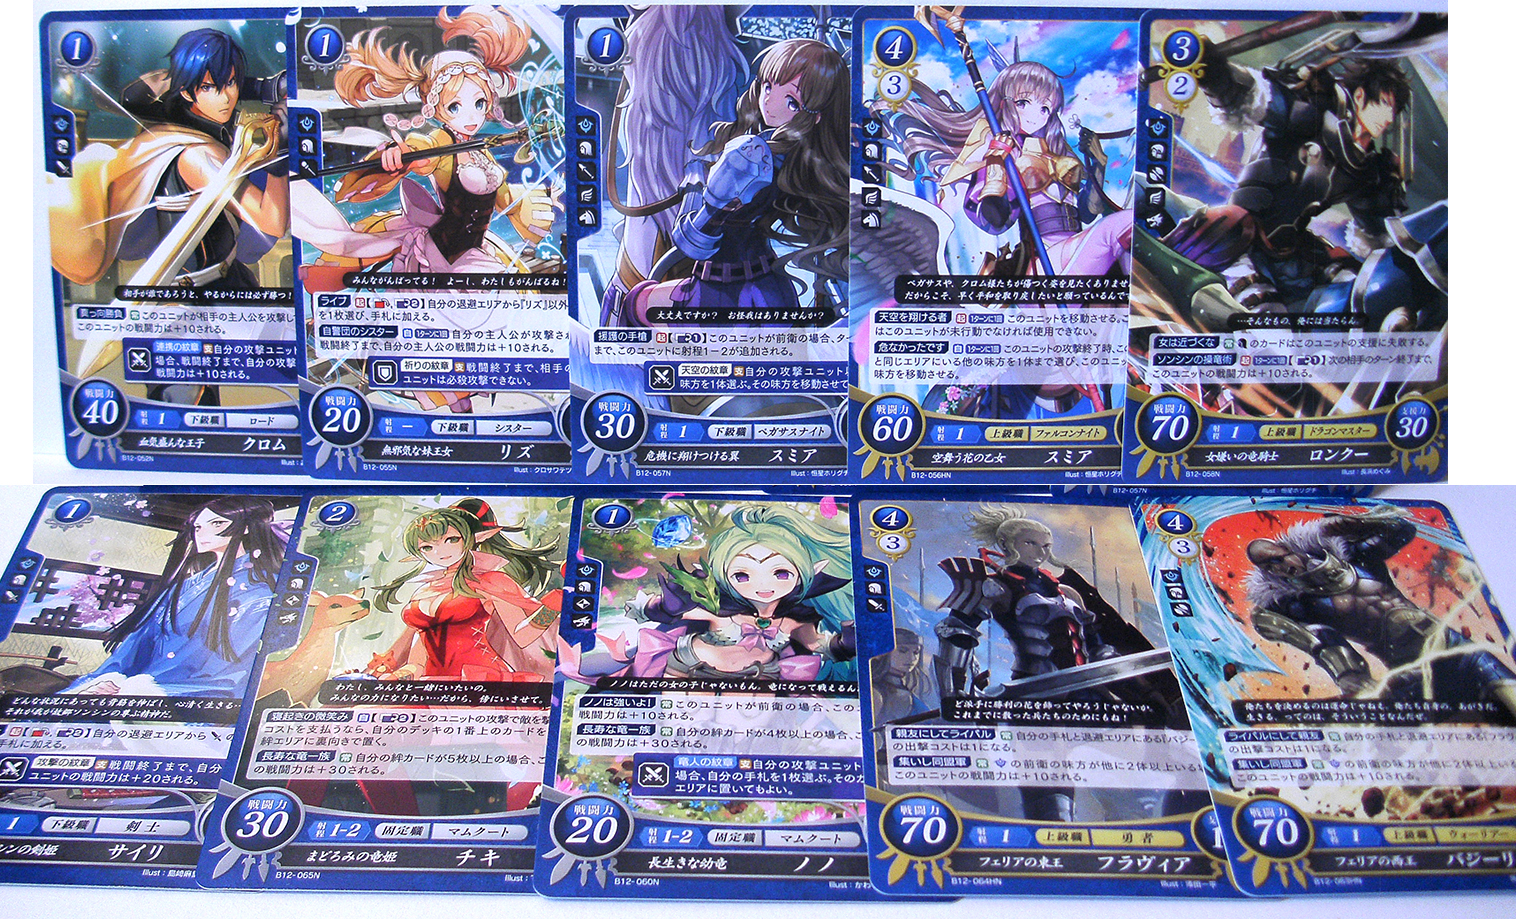 Awakening Fire Emblem Cipher TCG cards (series 12) sold by shinyv